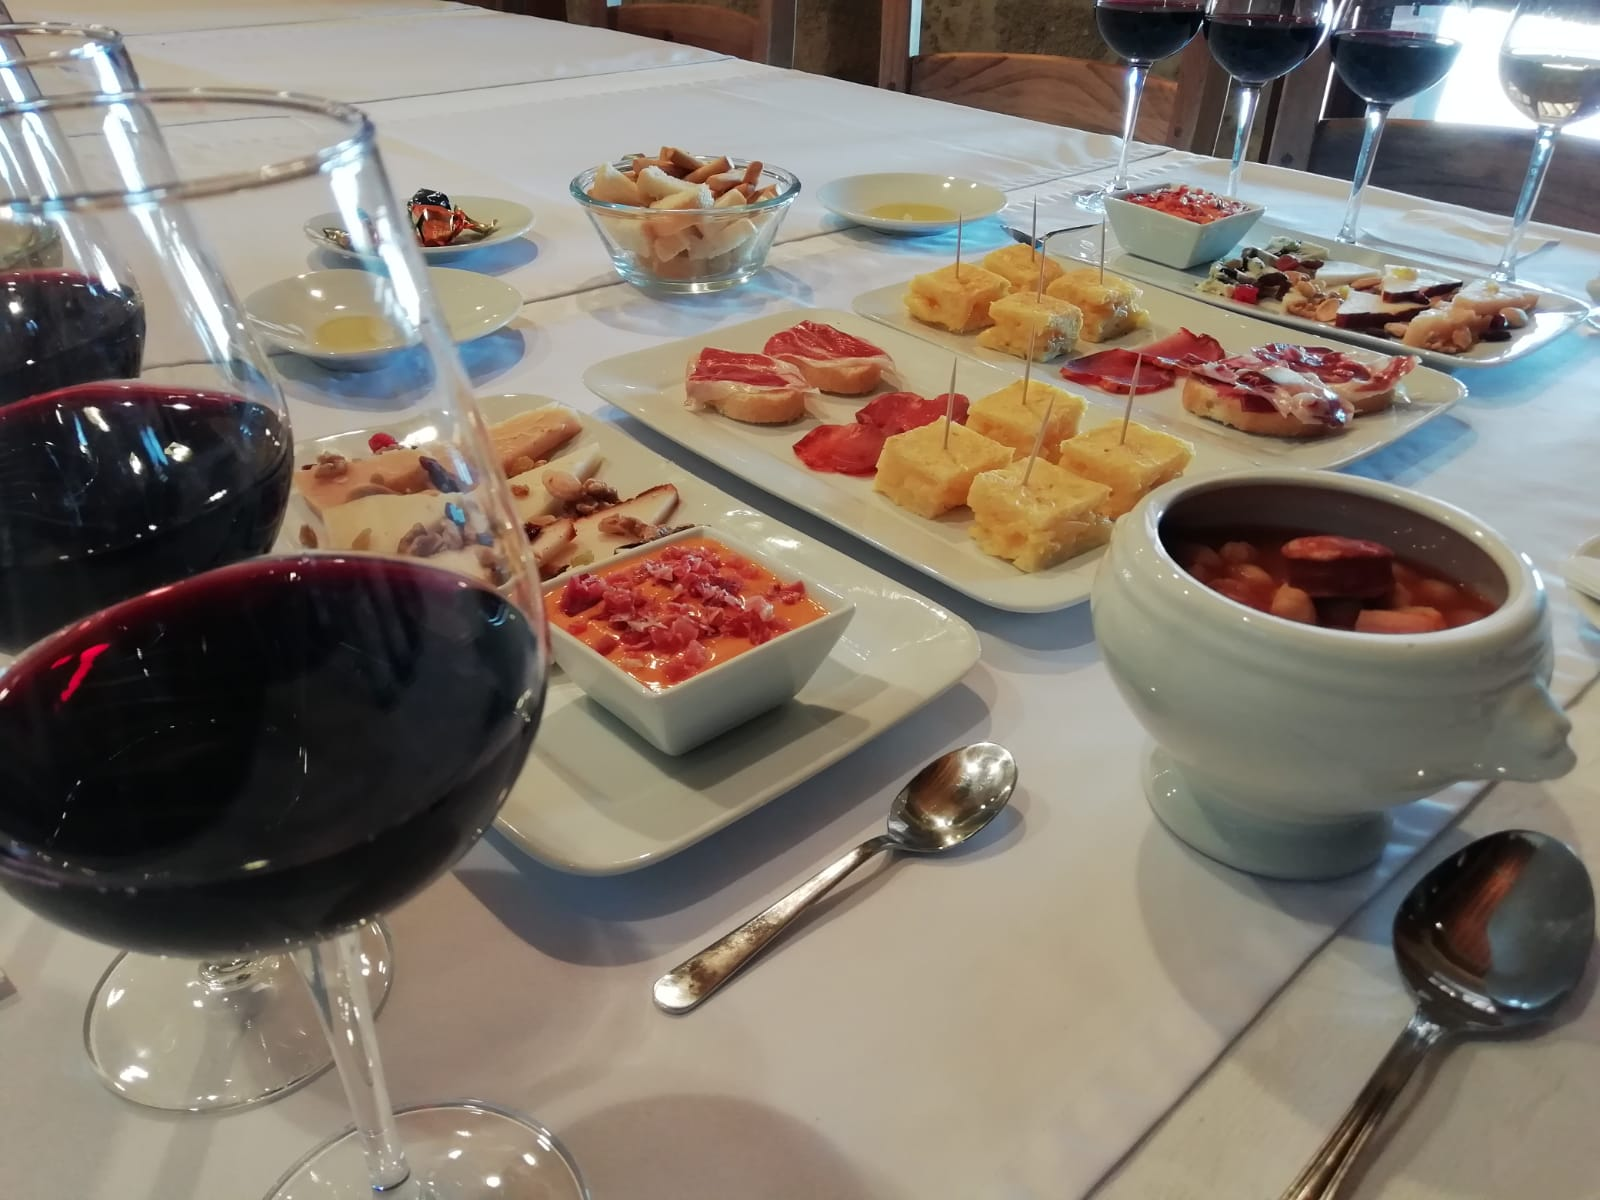 12:00h - TOUR, TASTING AND TAPAS LUNCH - ENGLISH